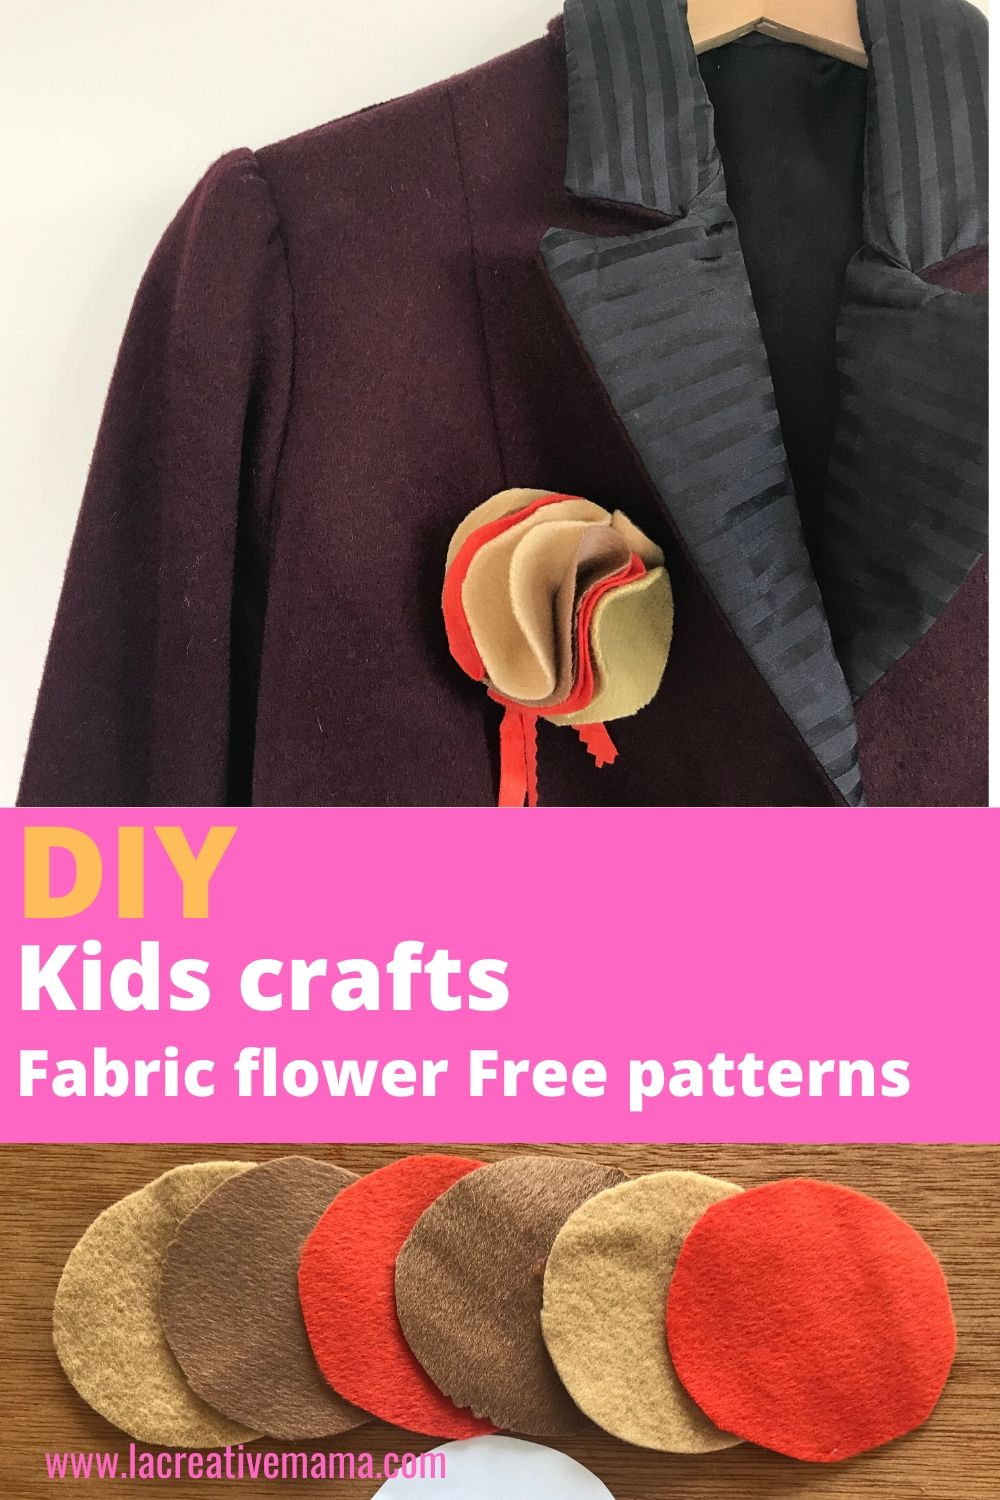 How to make a fast and easy fabric flower - La creative mama -   23 fabric crafts for kids to make ideas